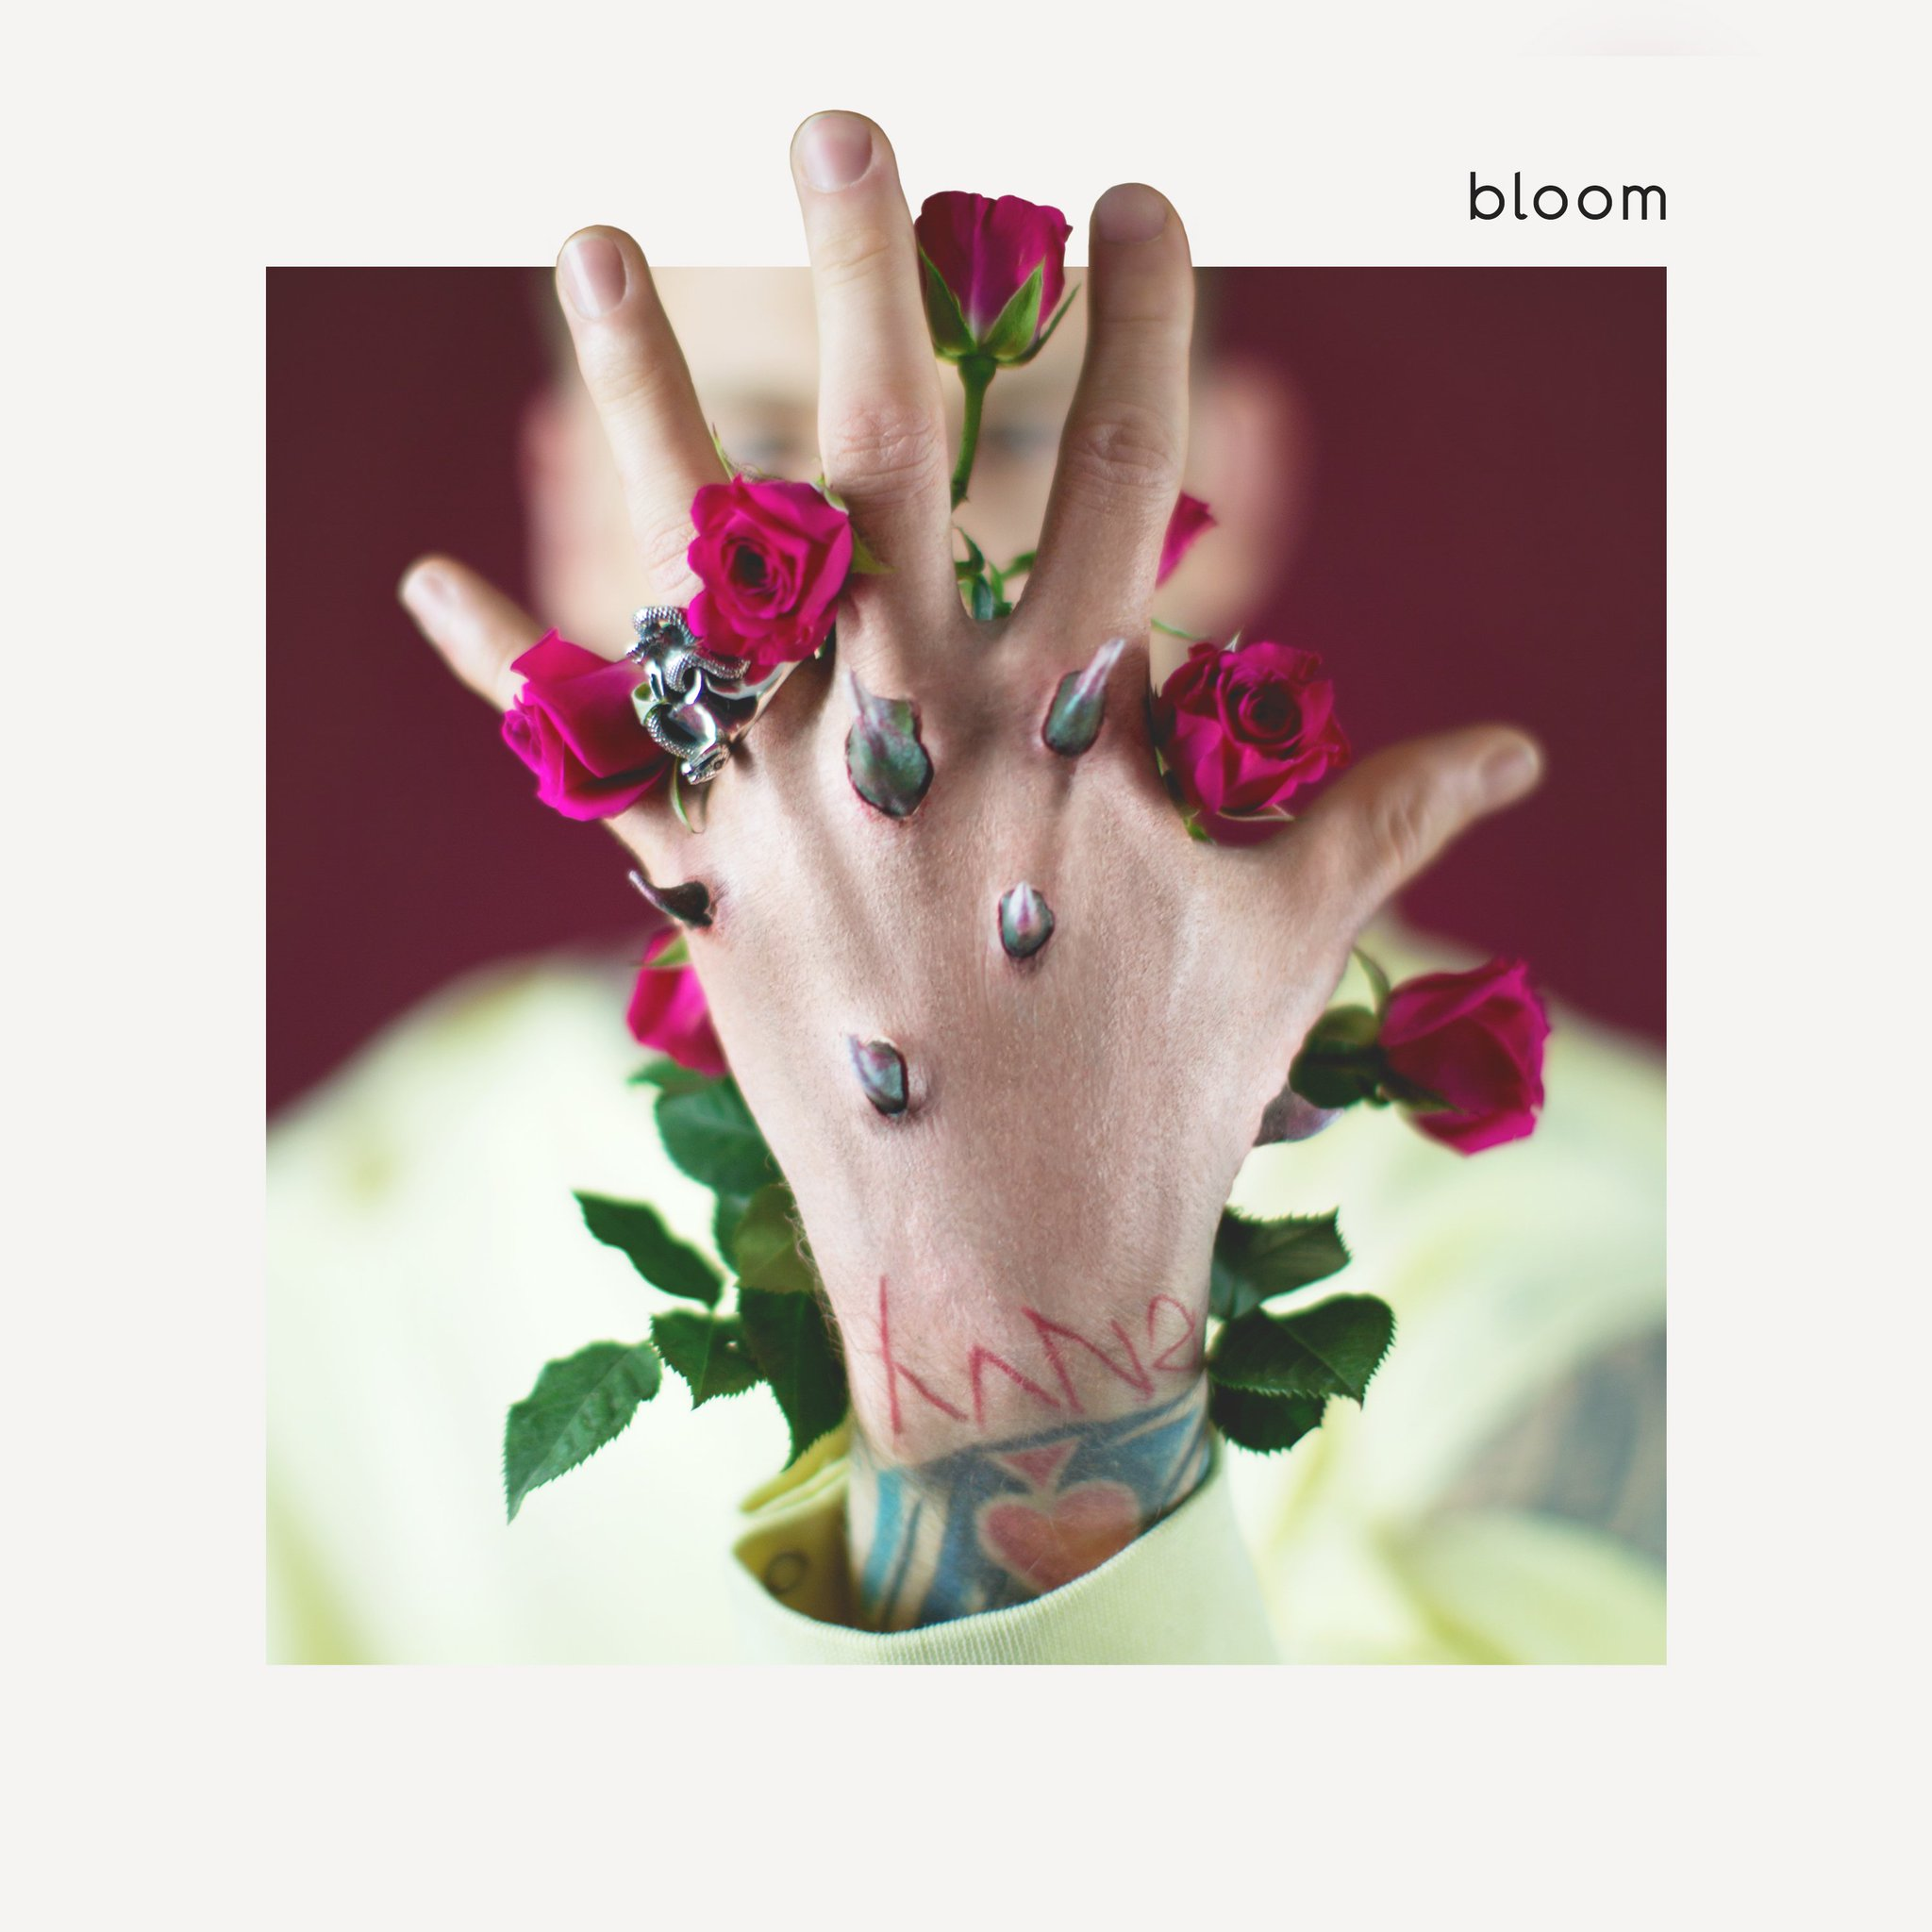 5.12.17 #bloom https://t.co/6t4aTJuyTG